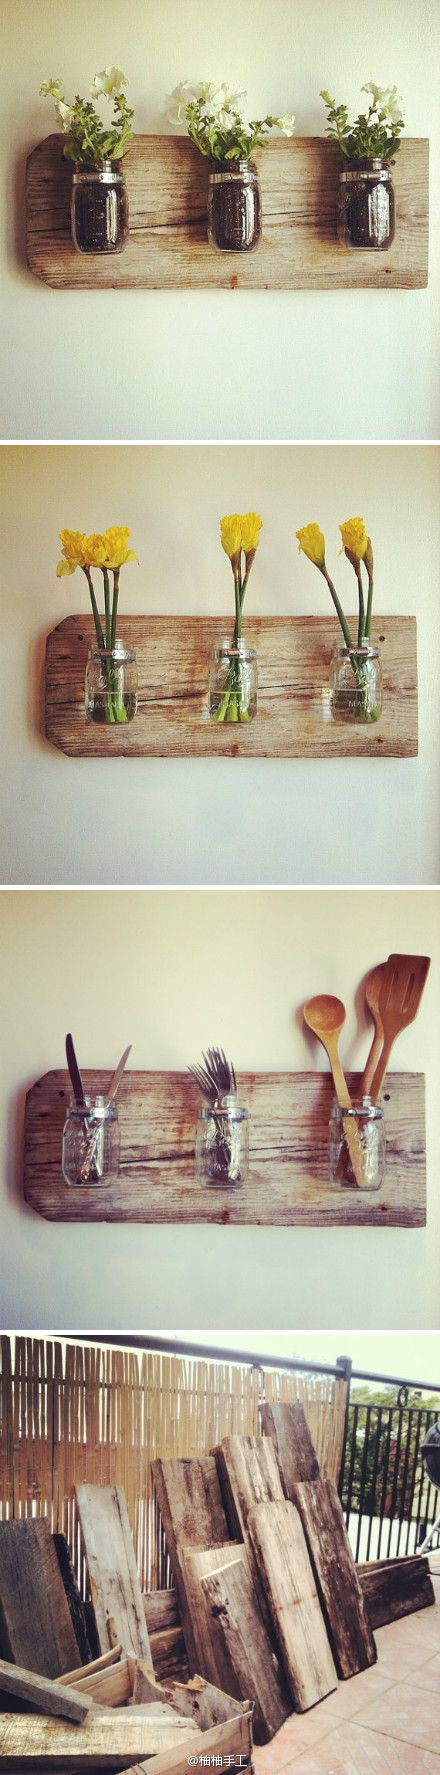 Salvage wood with mason jar vases/containers